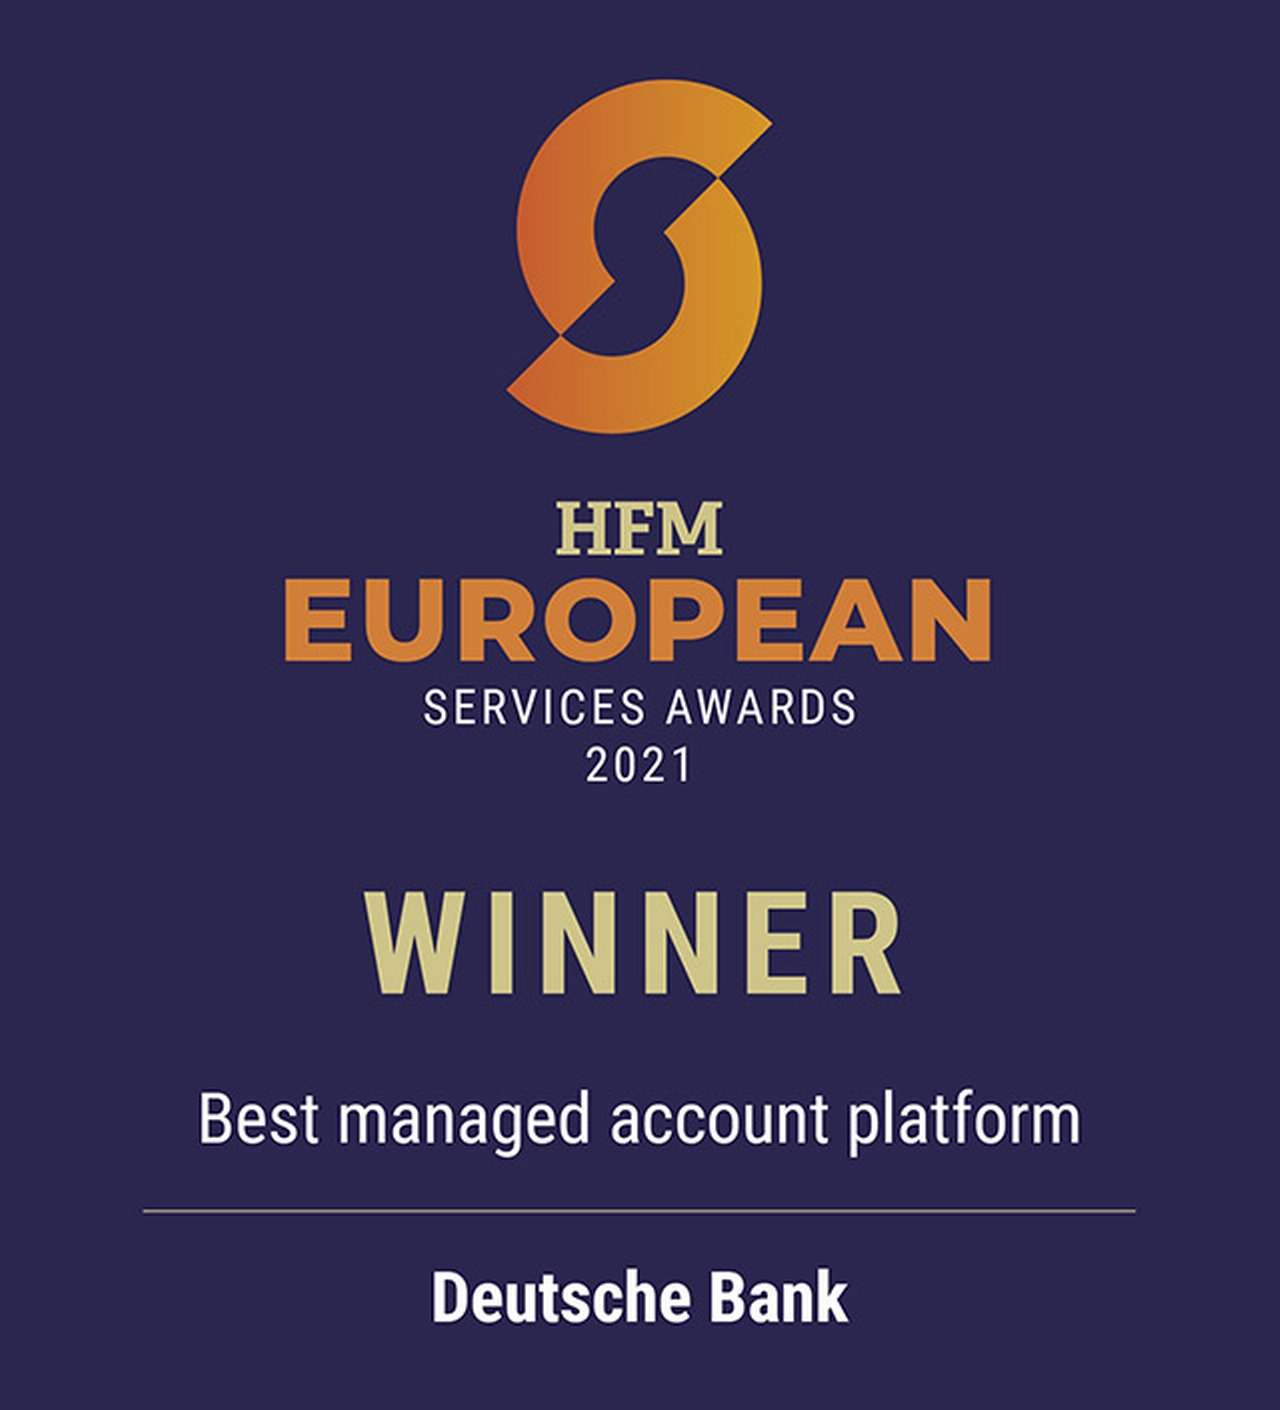 2021-hfm-eu-services-awards-winner-logo-deutsche-bank-640.jpg